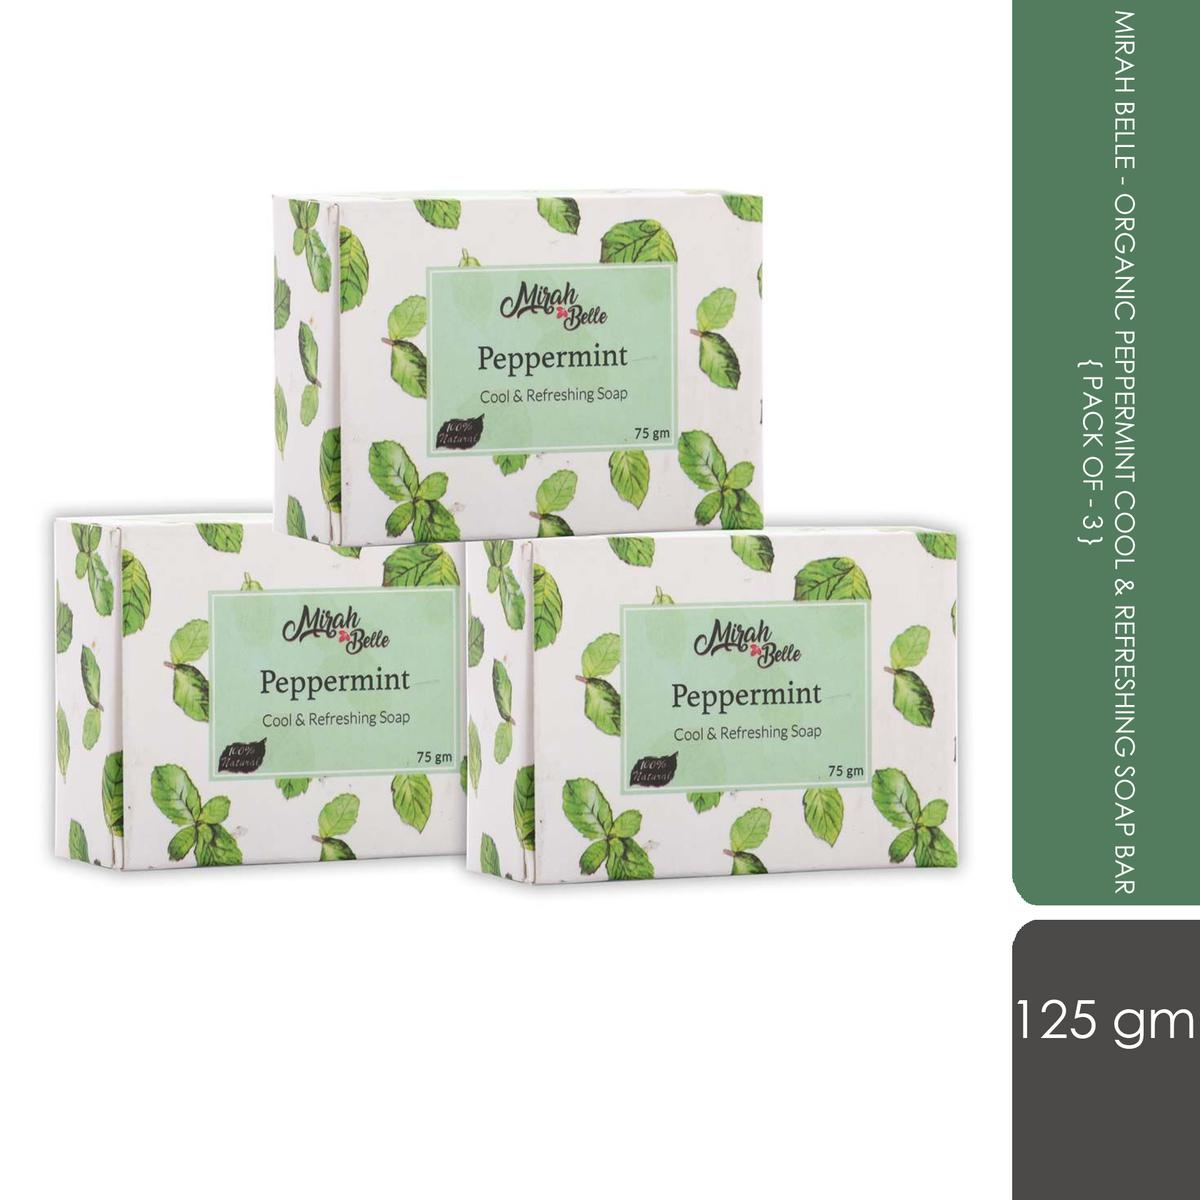 Mirah Belle - Organic Peppermint Cool and Refreshing Soap Bar (Pack of 3)